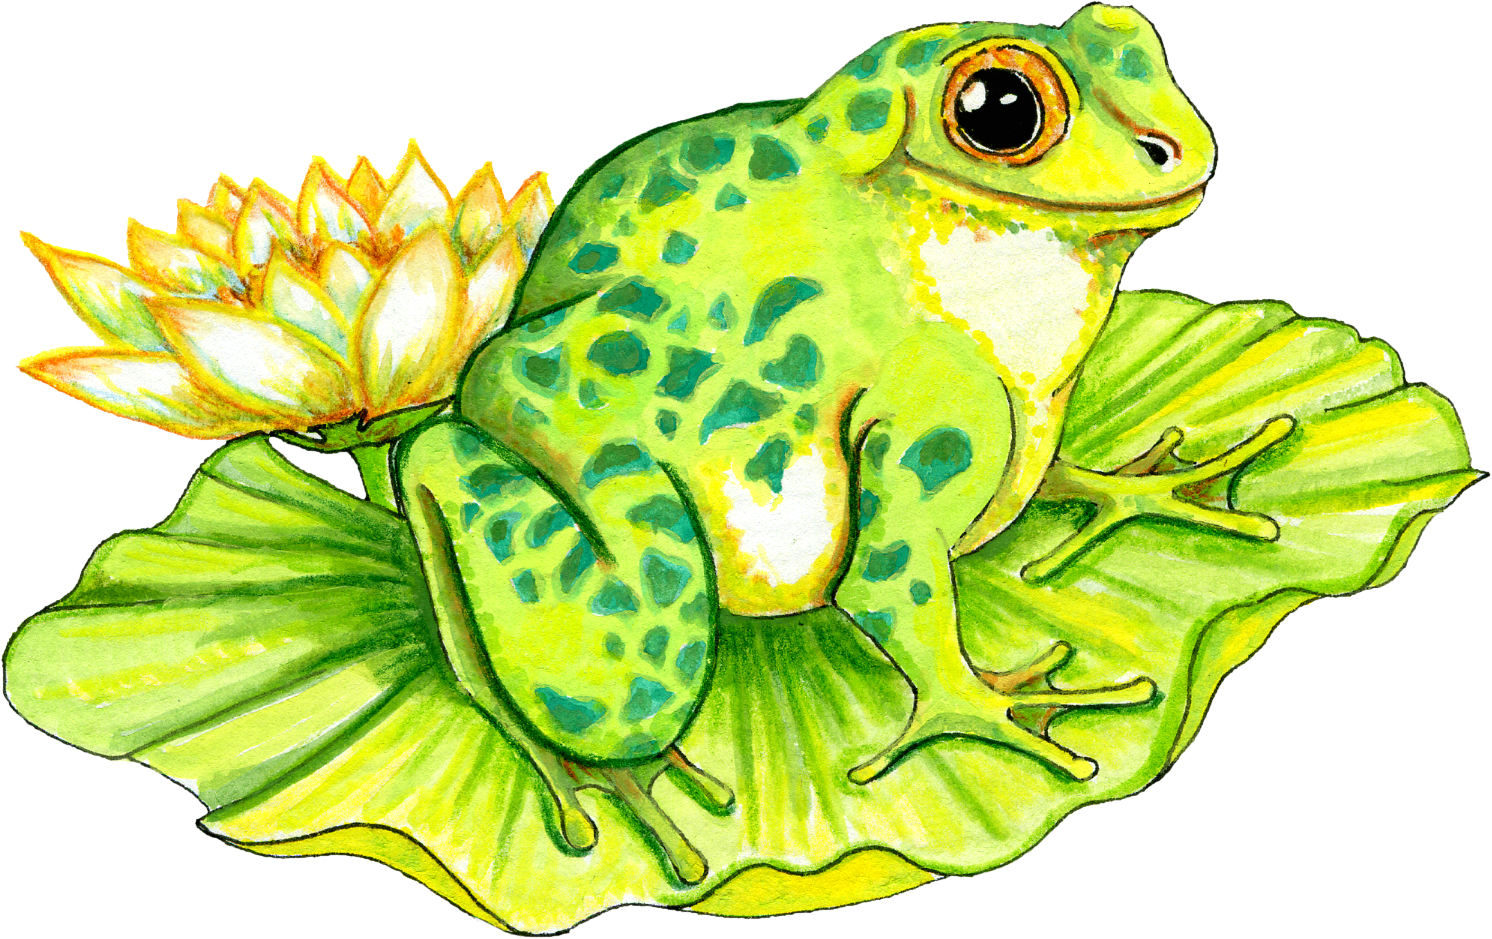 Png on lily pad. Toad clipart frog pond